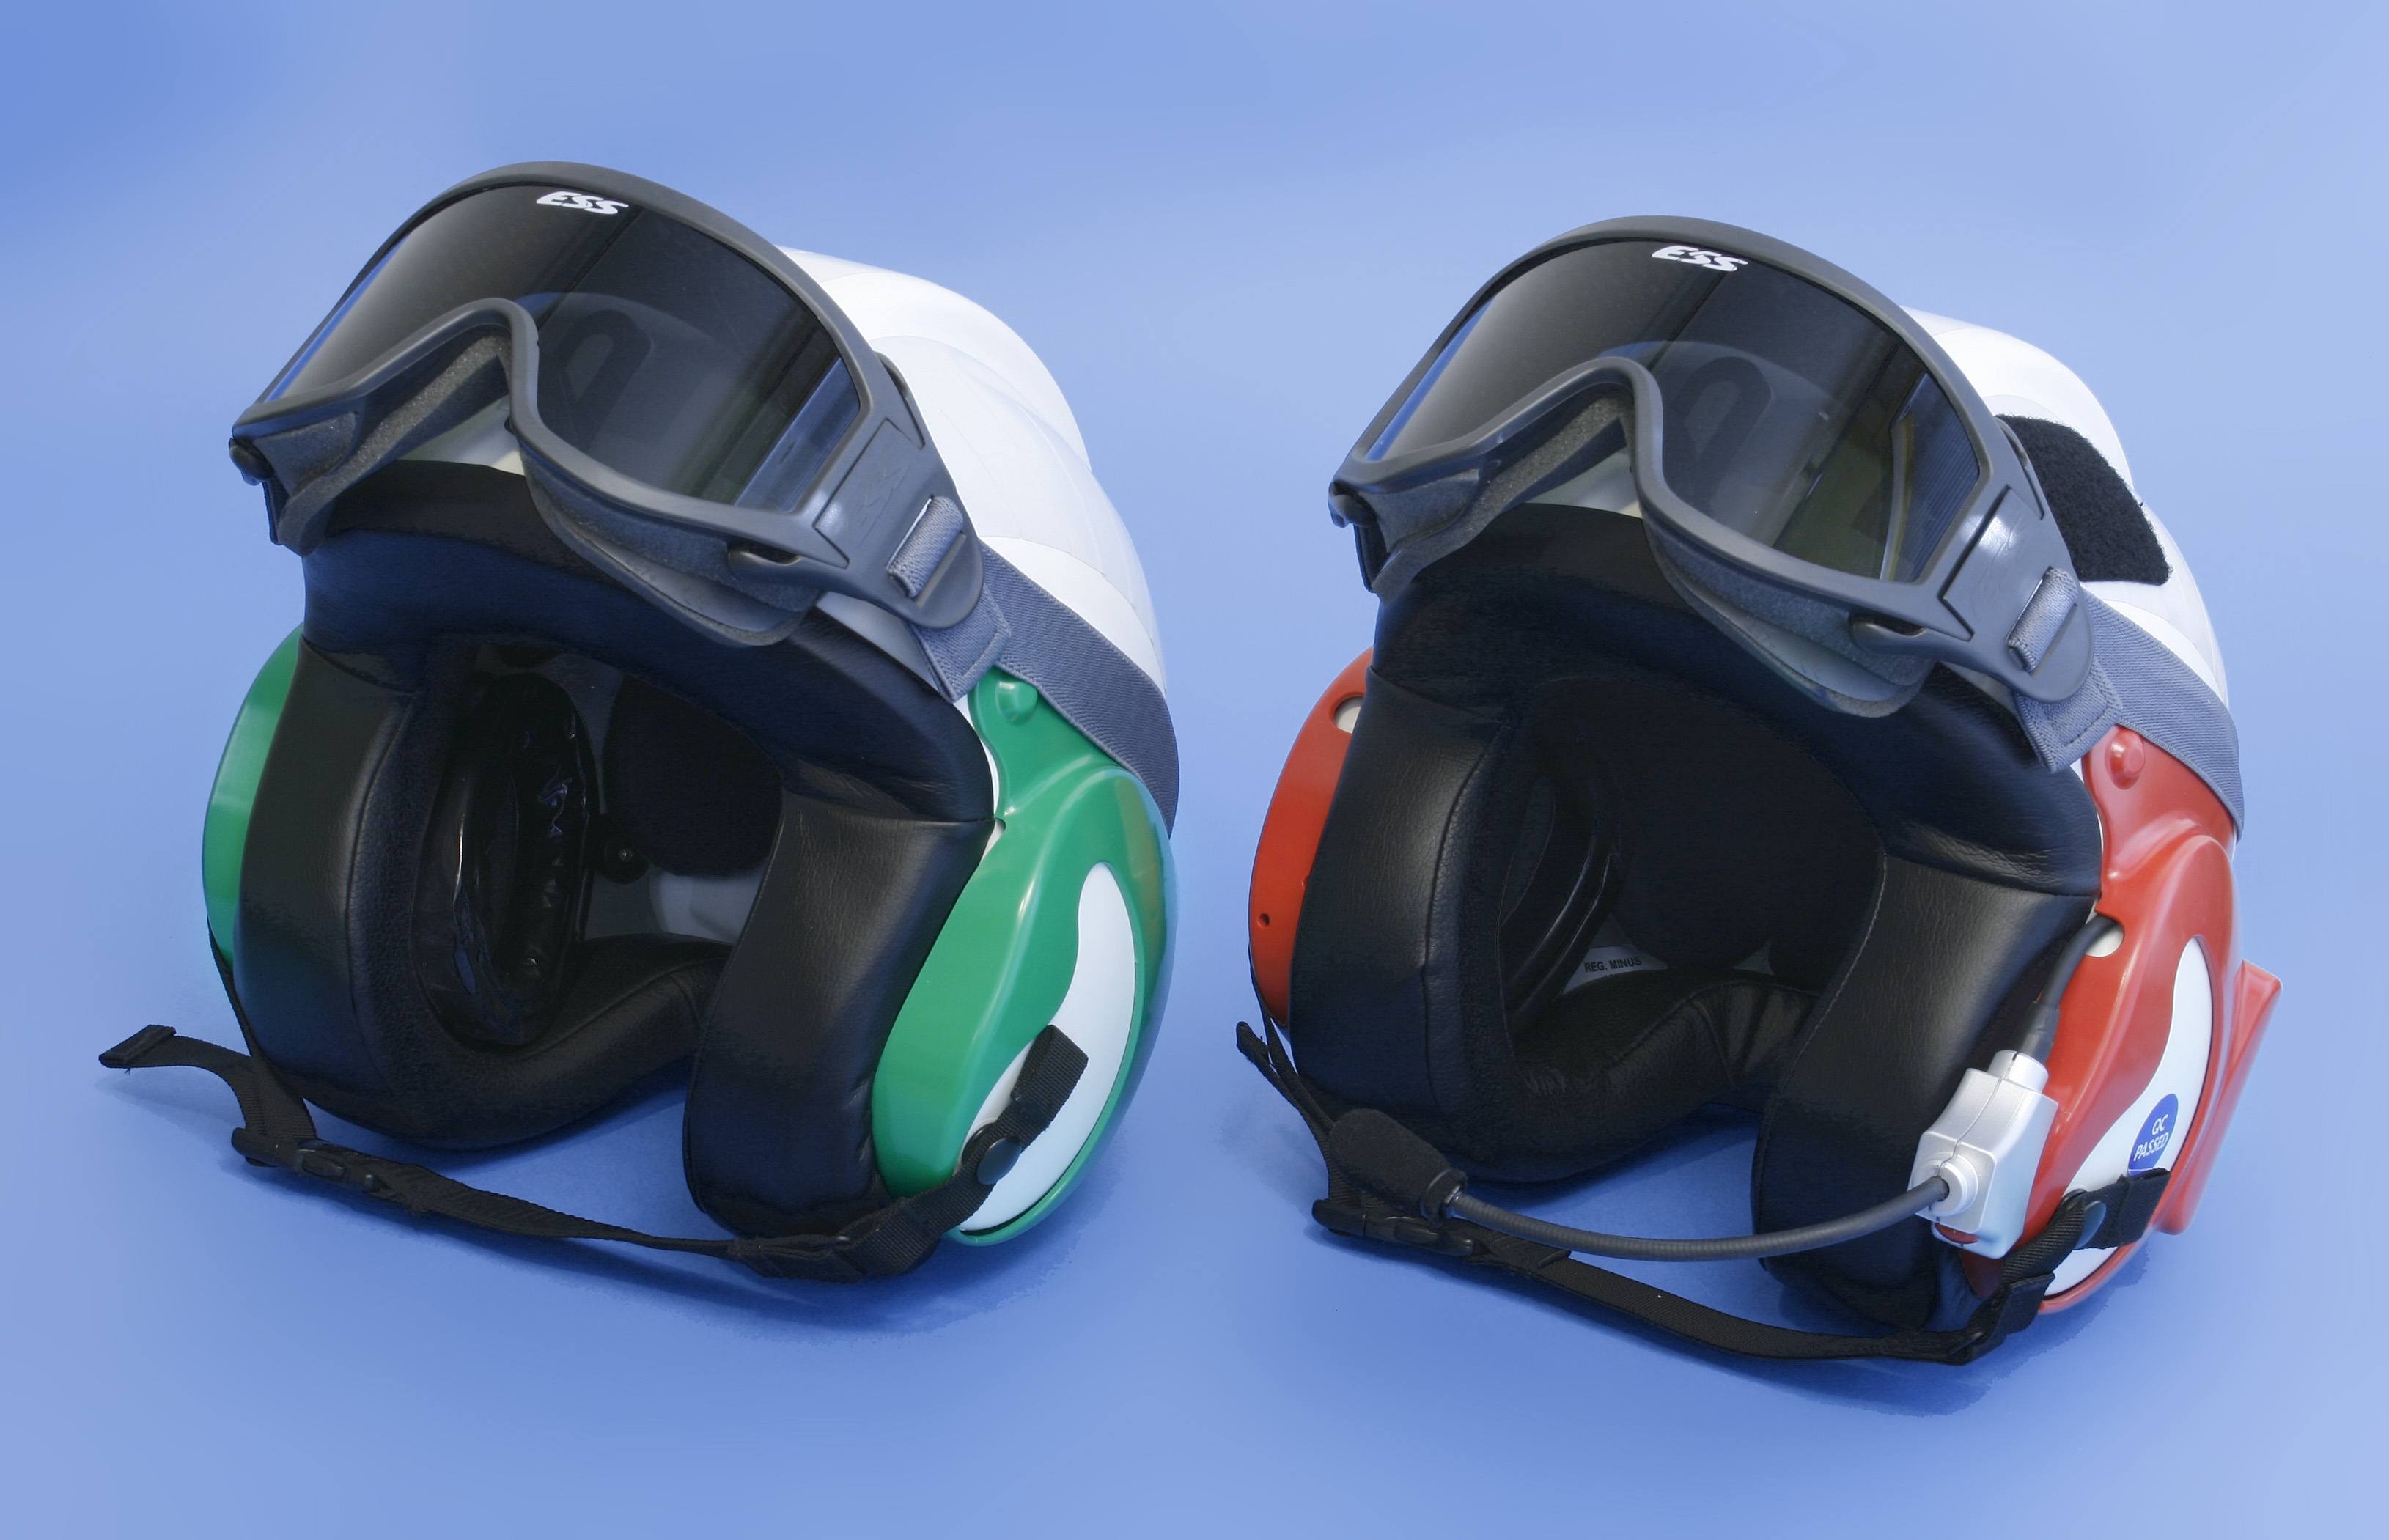 New Triple Hearing Protection helmet system from Creare